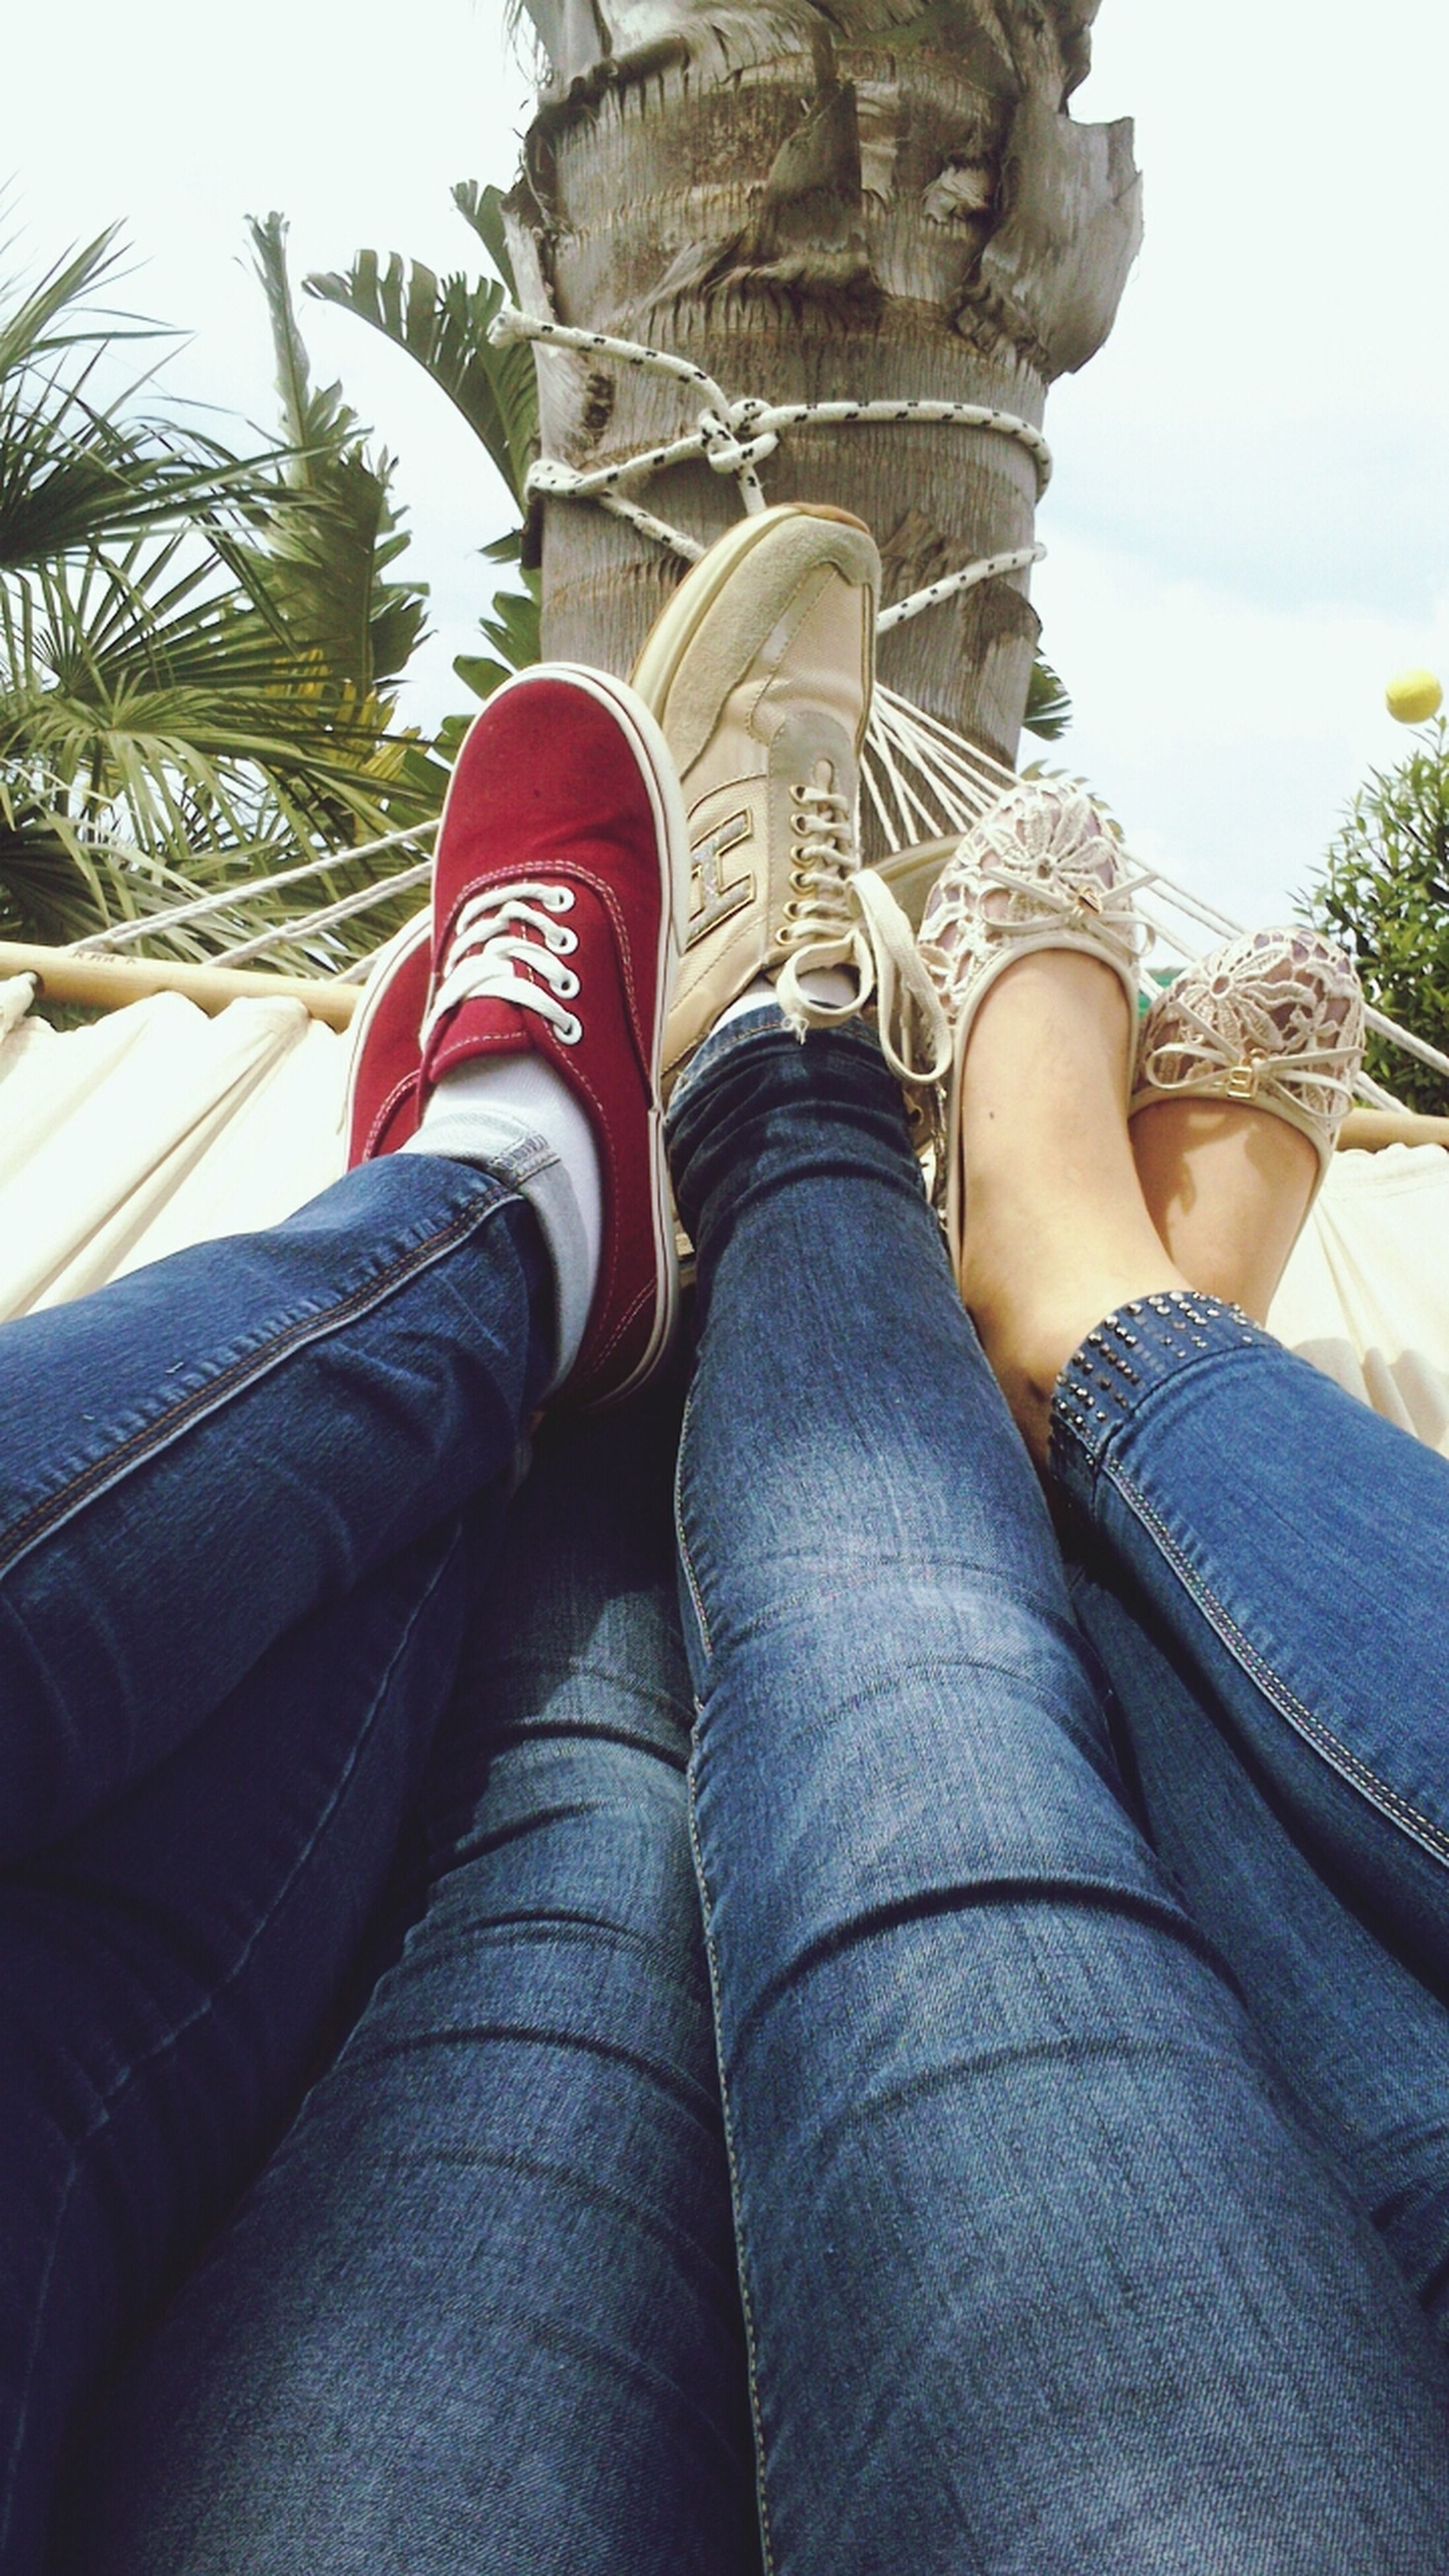 low section, person, personal perspective, lifestyles, shoe, jeans, human foot, leisure activity, sitting, relaxation, legs crossed at ankle, part of, footwear, resting, men, casual clothing